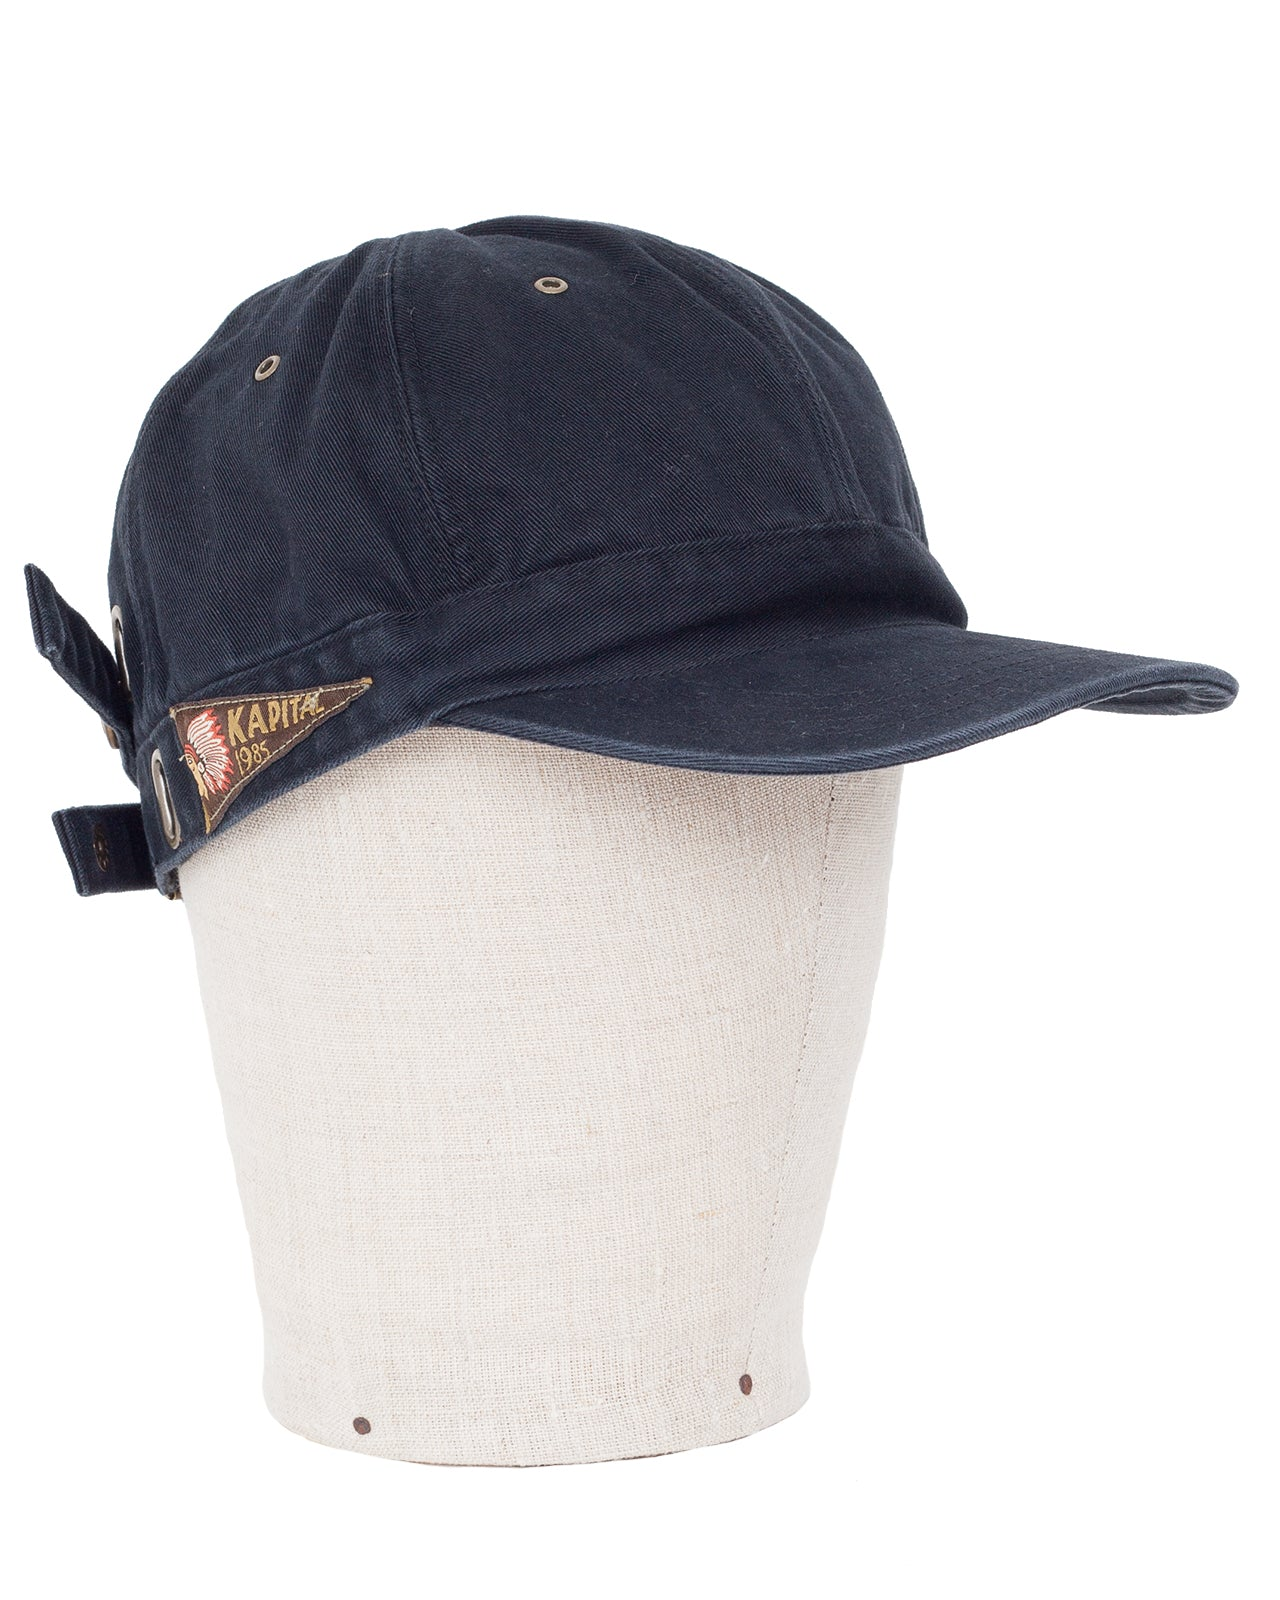 Kapital Chino Barbie Cap (Surf), Black